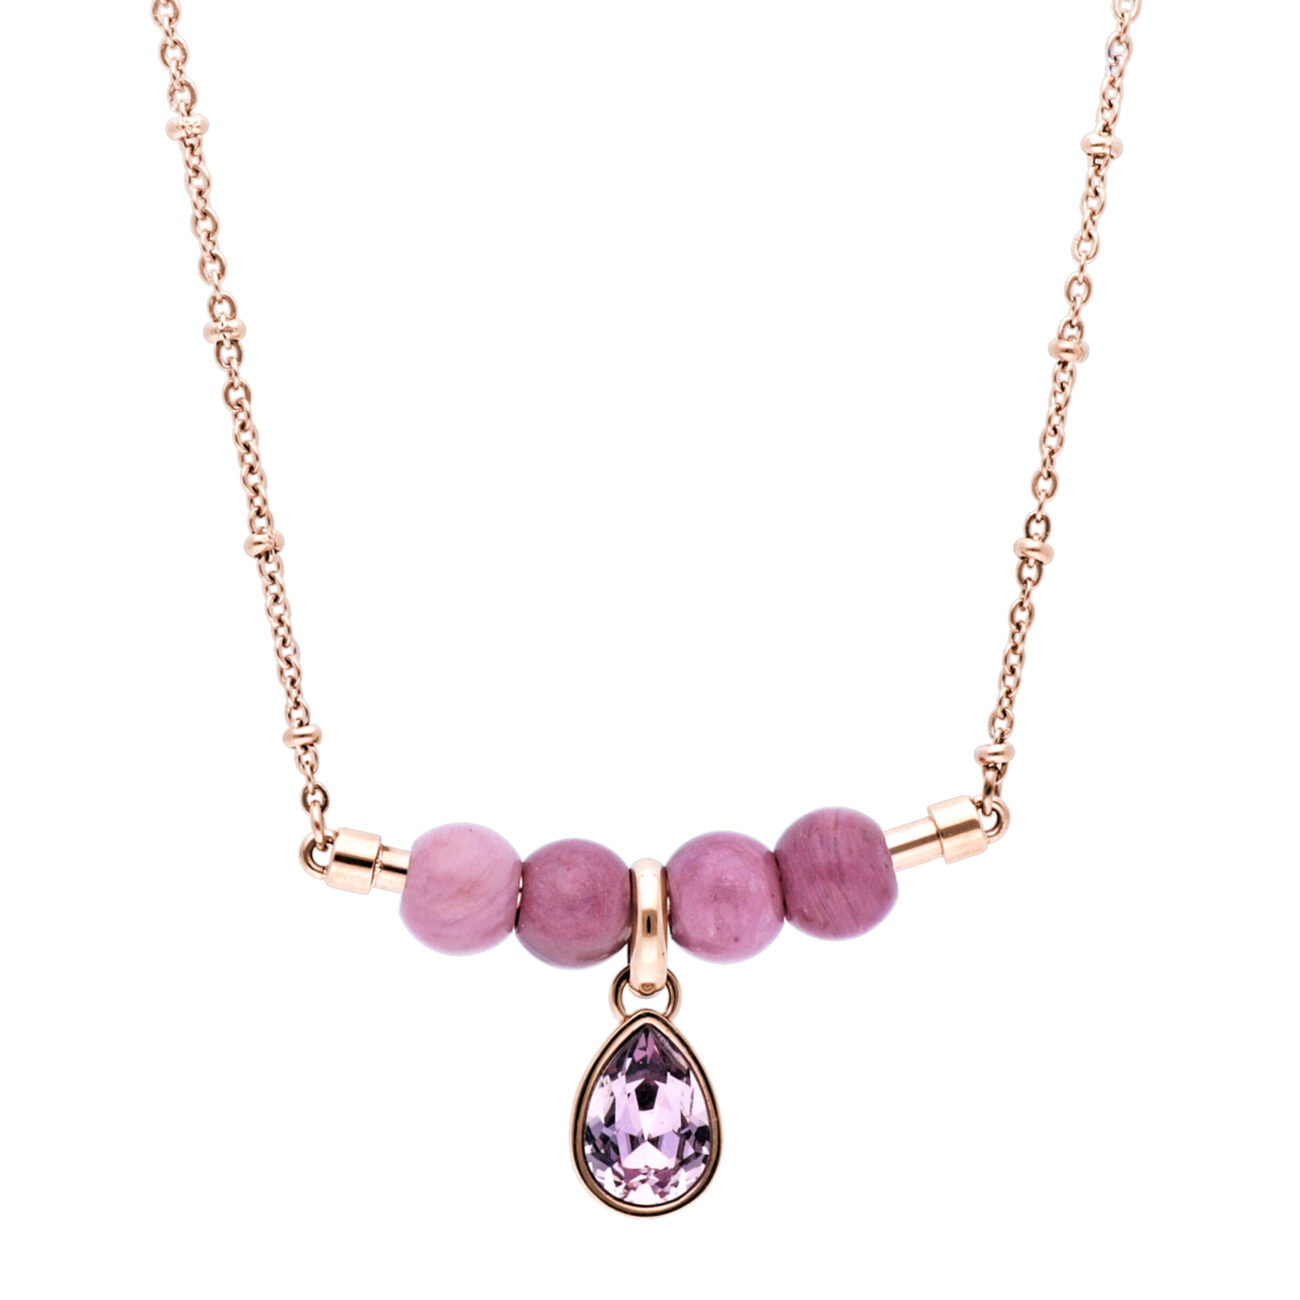 316L stainless steel necklace, rose gold pvd, rhodonite and Swarovski©crystal